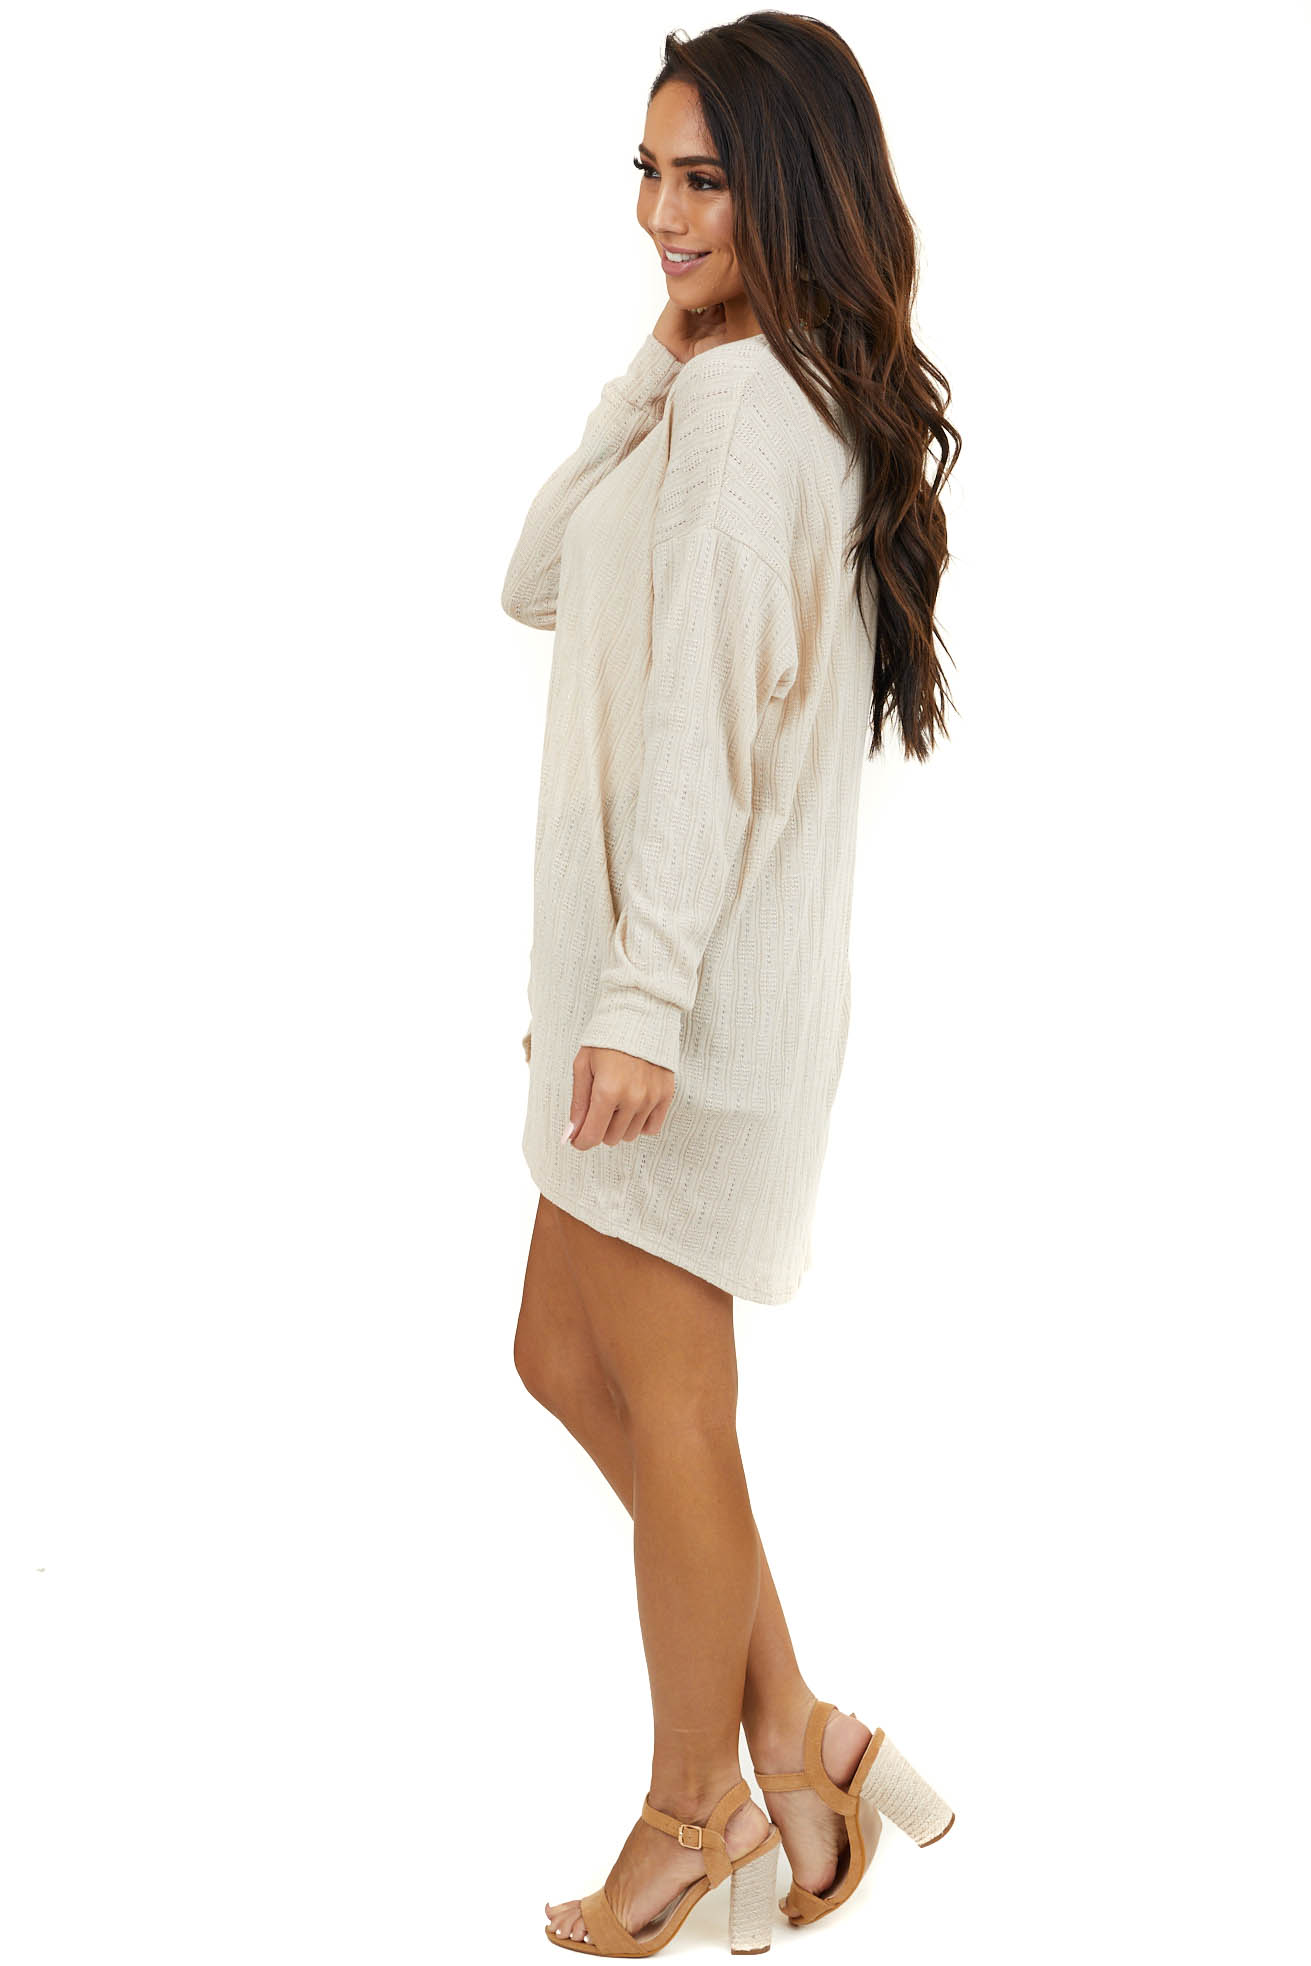 Tan Textured Long Sleeve Open Front Knit Cardigan